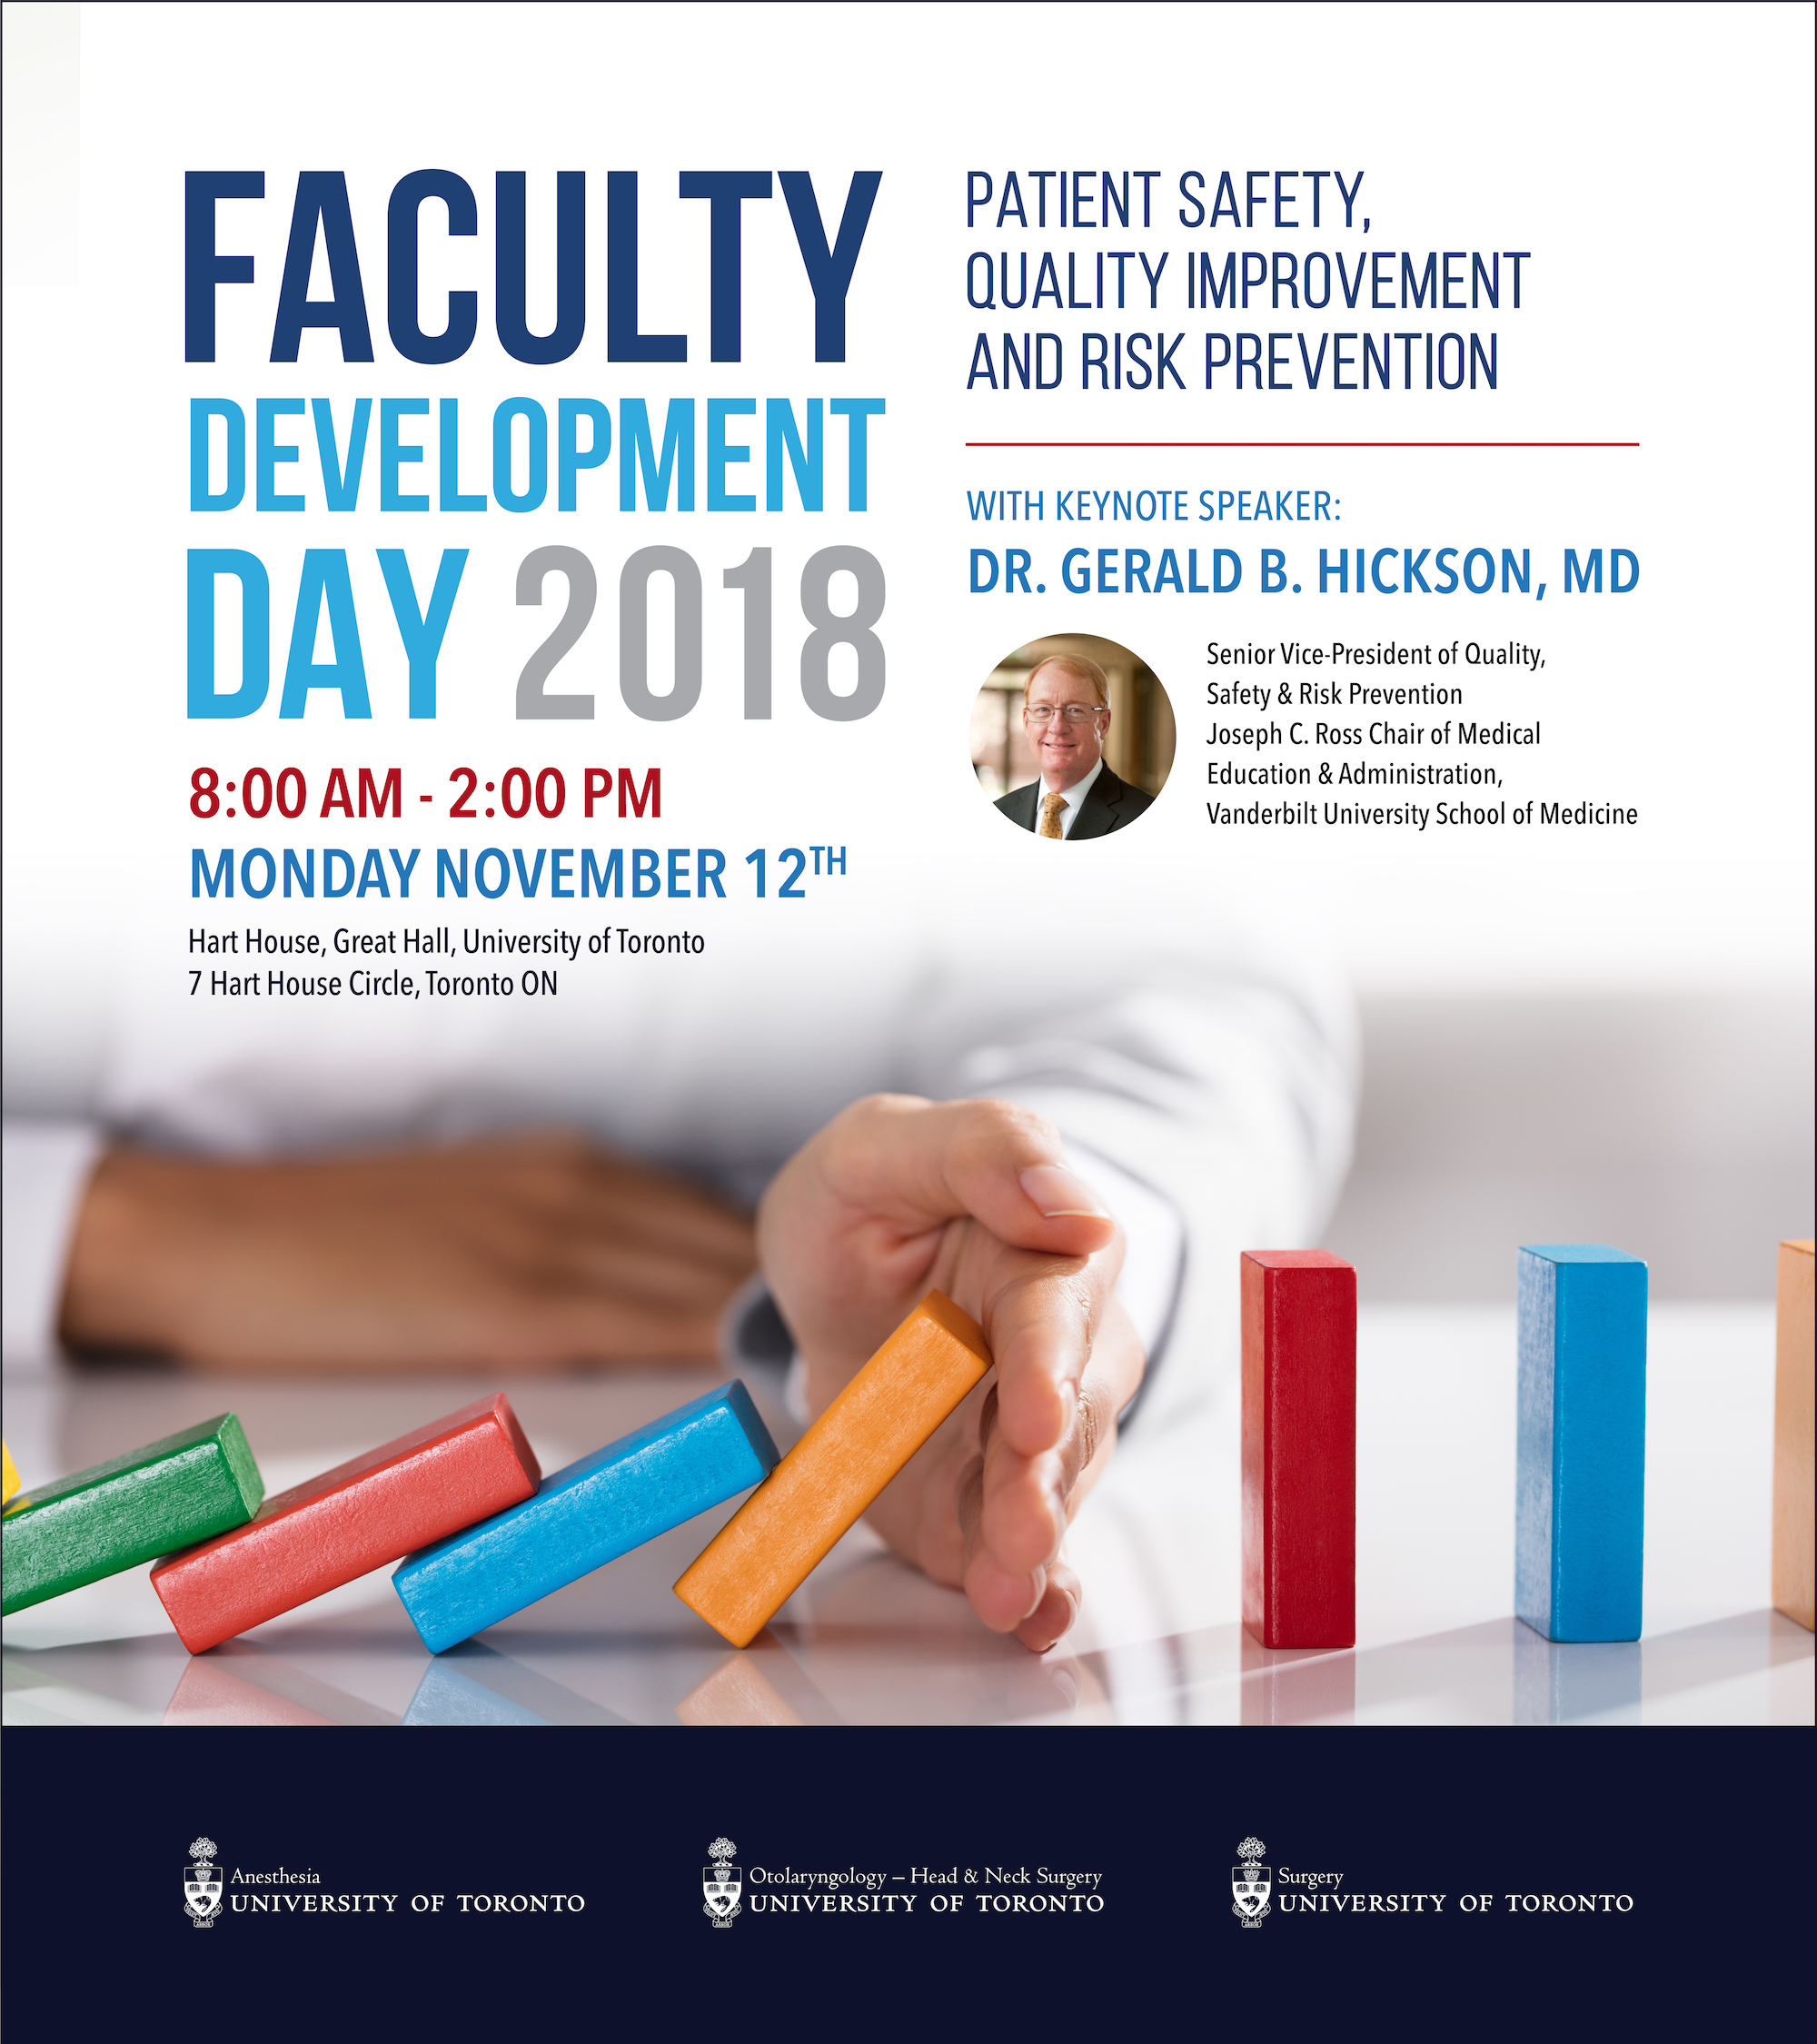 Faculty Development Day 2018